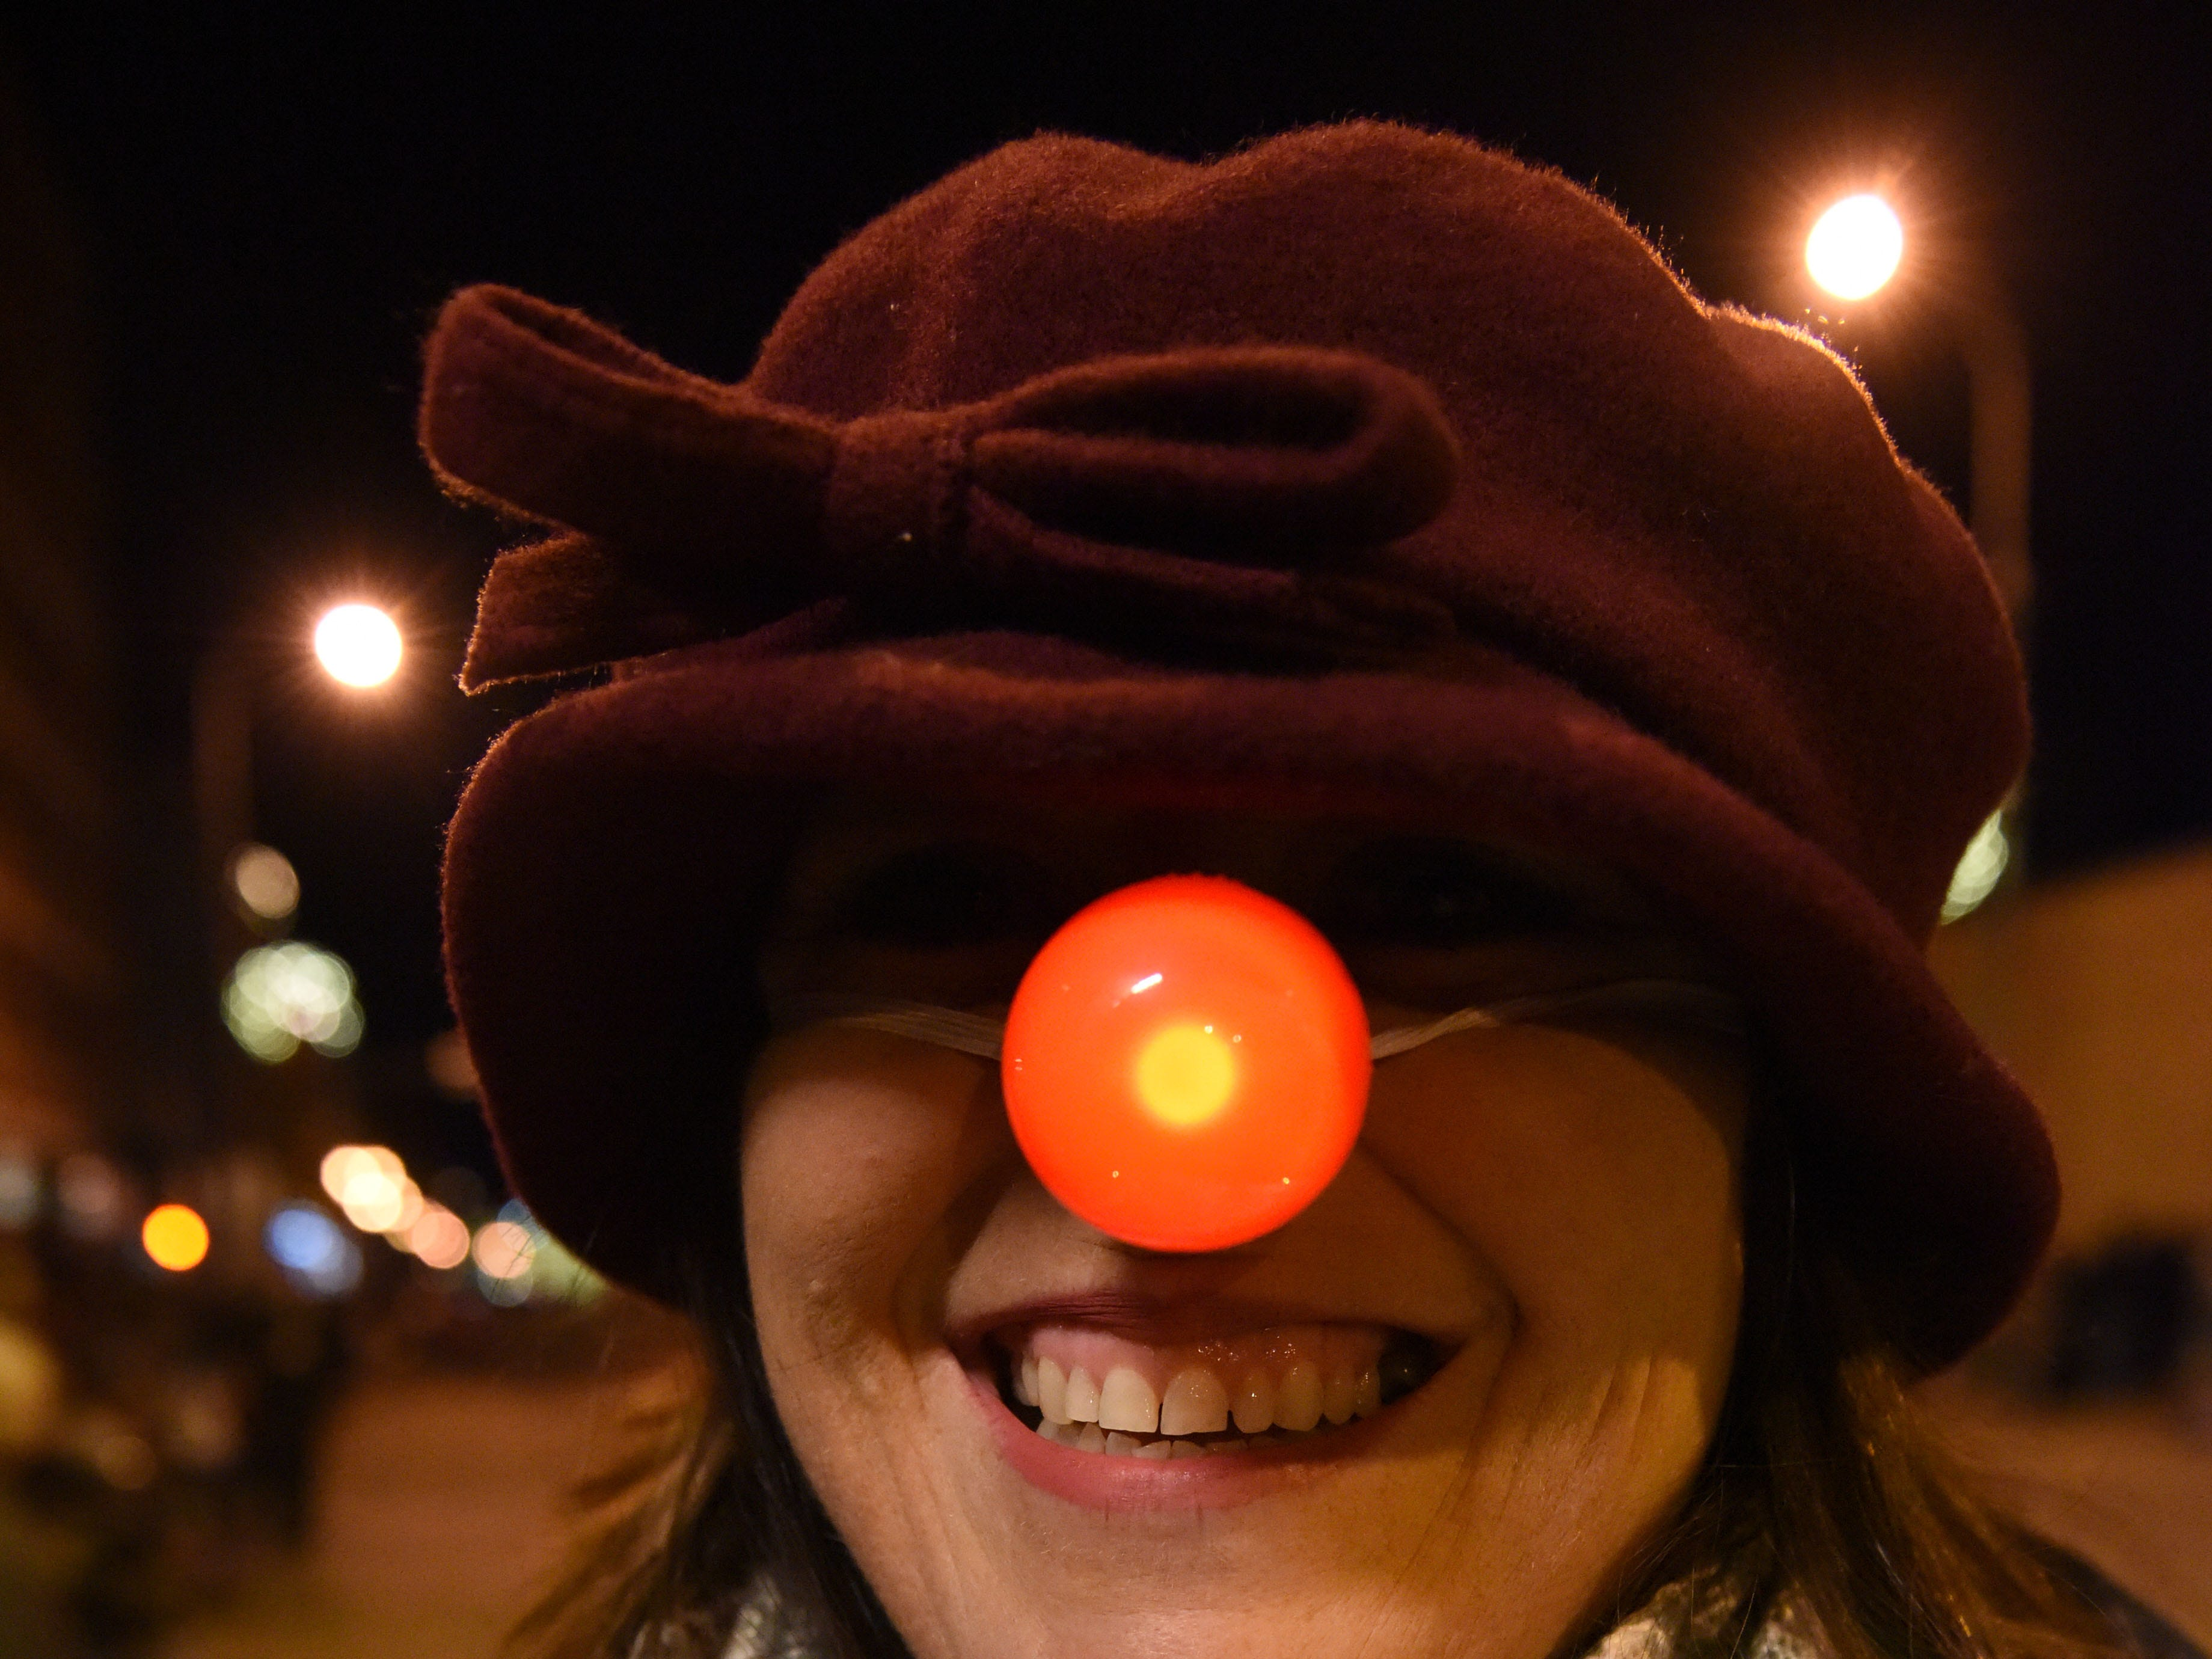 Leisha Watkins attends annual Parade of Lights in downtown Sioux Falls, S.D., Friday, Nov. 23, 2018.